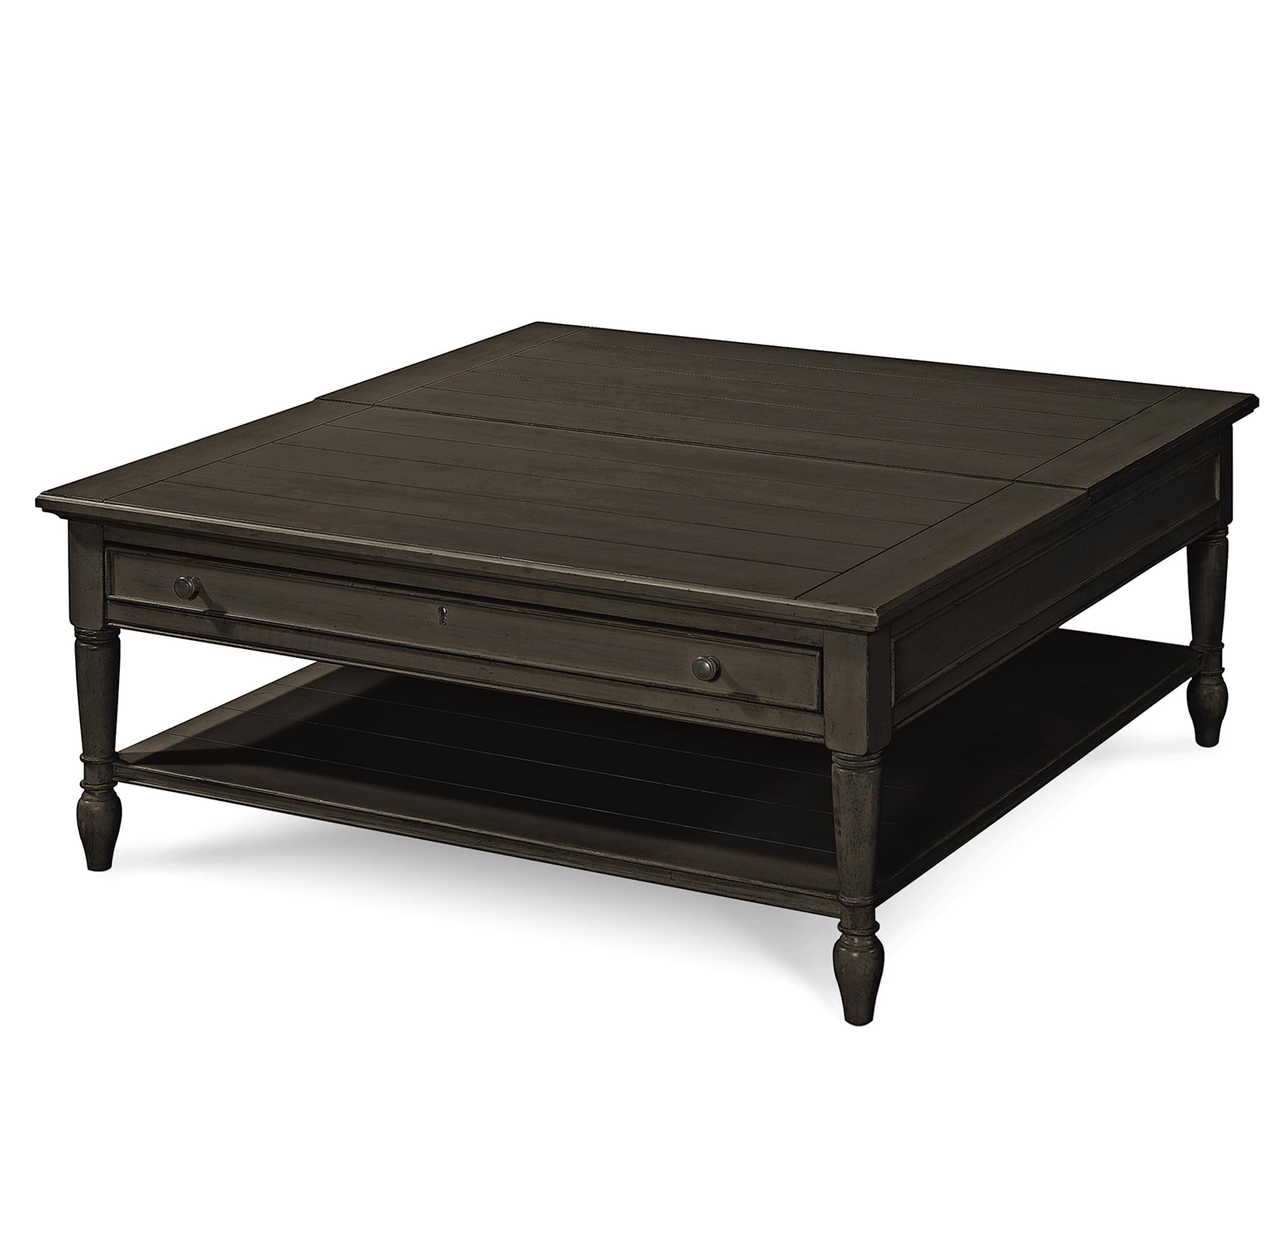 Country Chic Black Wood Square Coffee Table With Lift Top